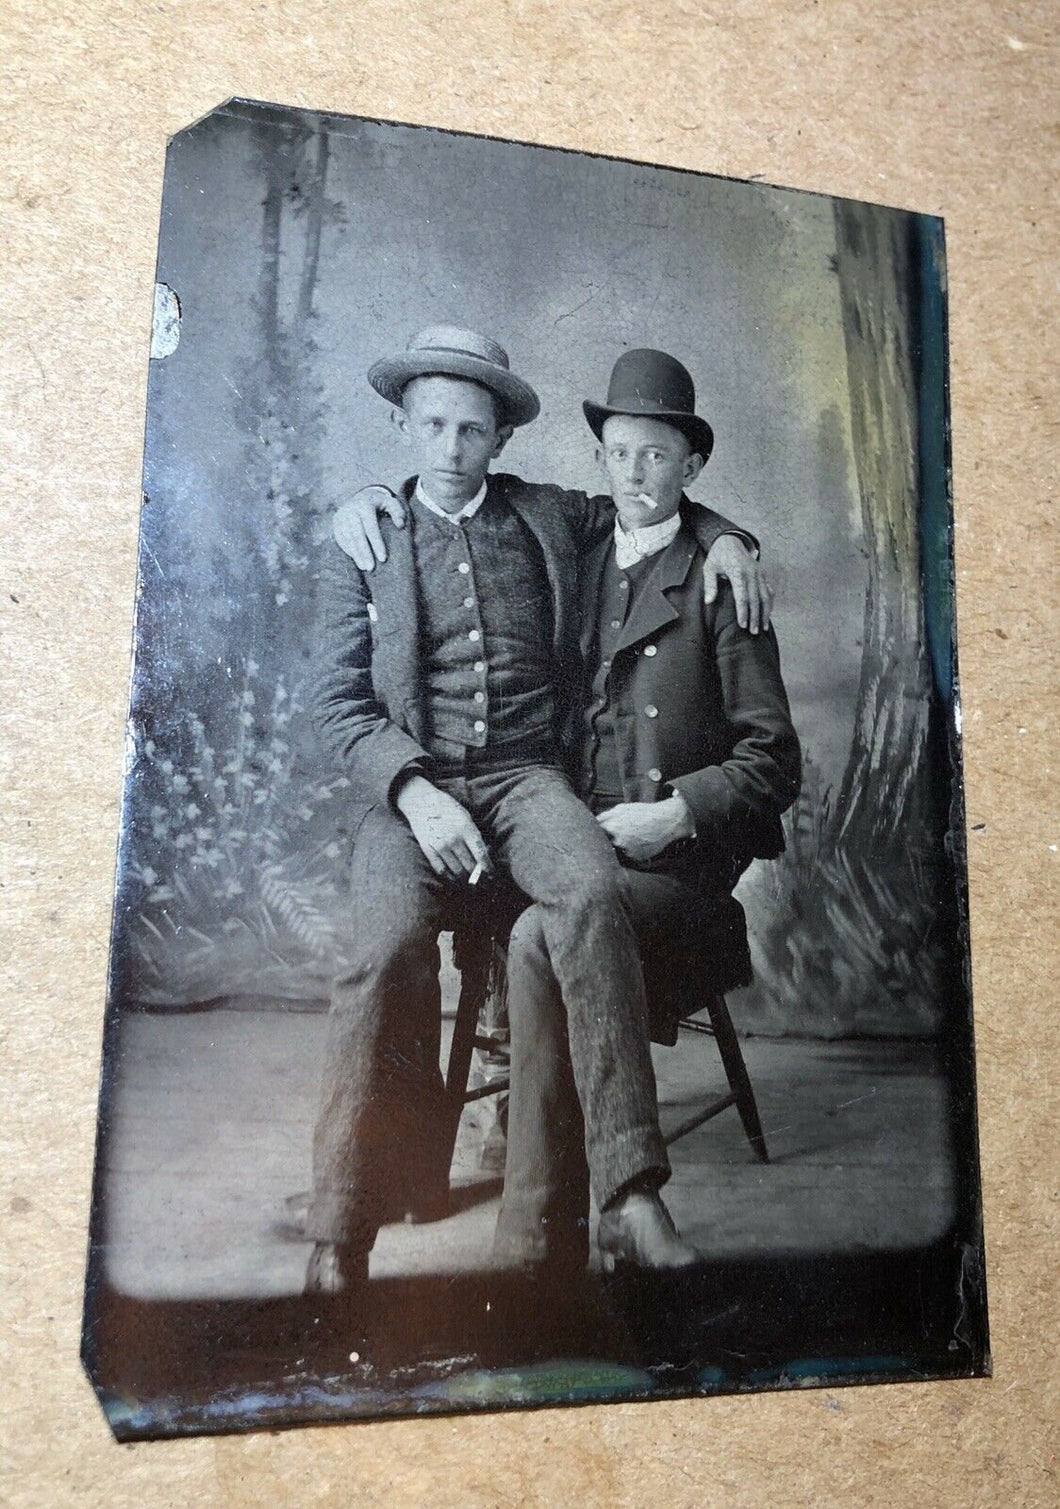 Two Cigarette Smoking Men One in Friend's Lap / Antique Tintype Photo